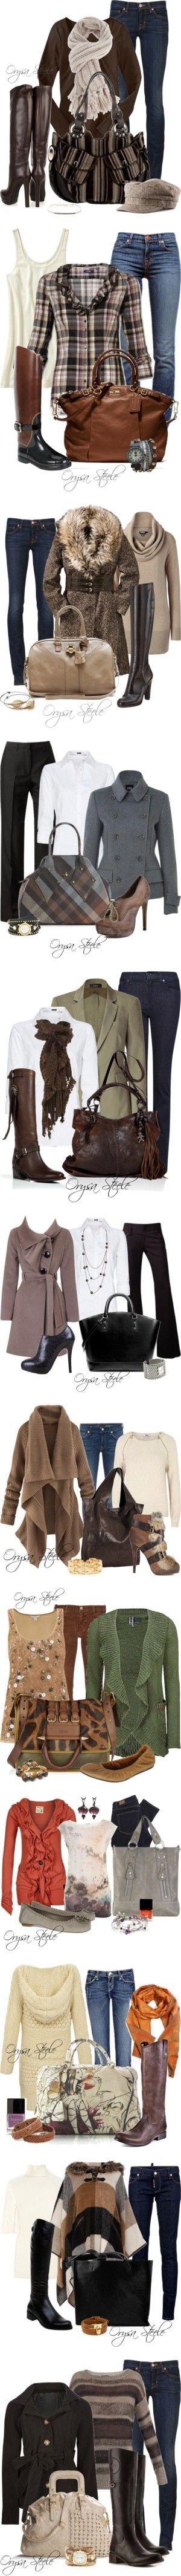 """""""Fall Fashion"""" by orysa on Polyvore"""